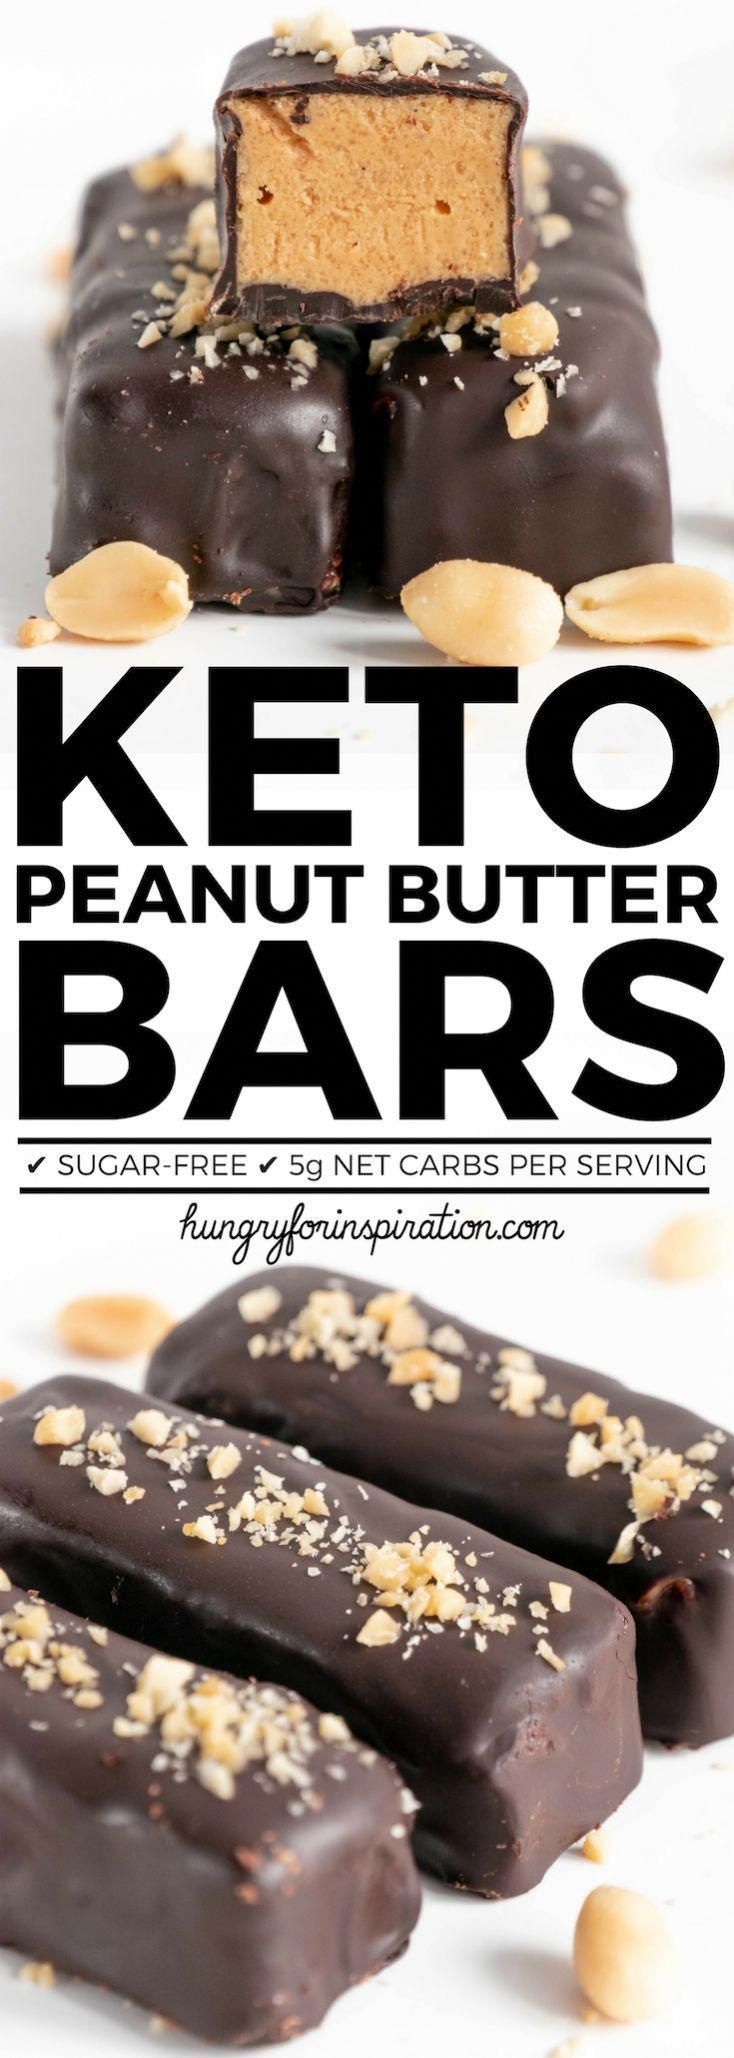 Peanut Butter Bars that'll satisfy your sweet cravings in no time! With 5g net carbs perfectly suitable for the ketogenic diet, as well as gluten-free and sugar-free. (Easy Homemade Keto Bars) ⎮